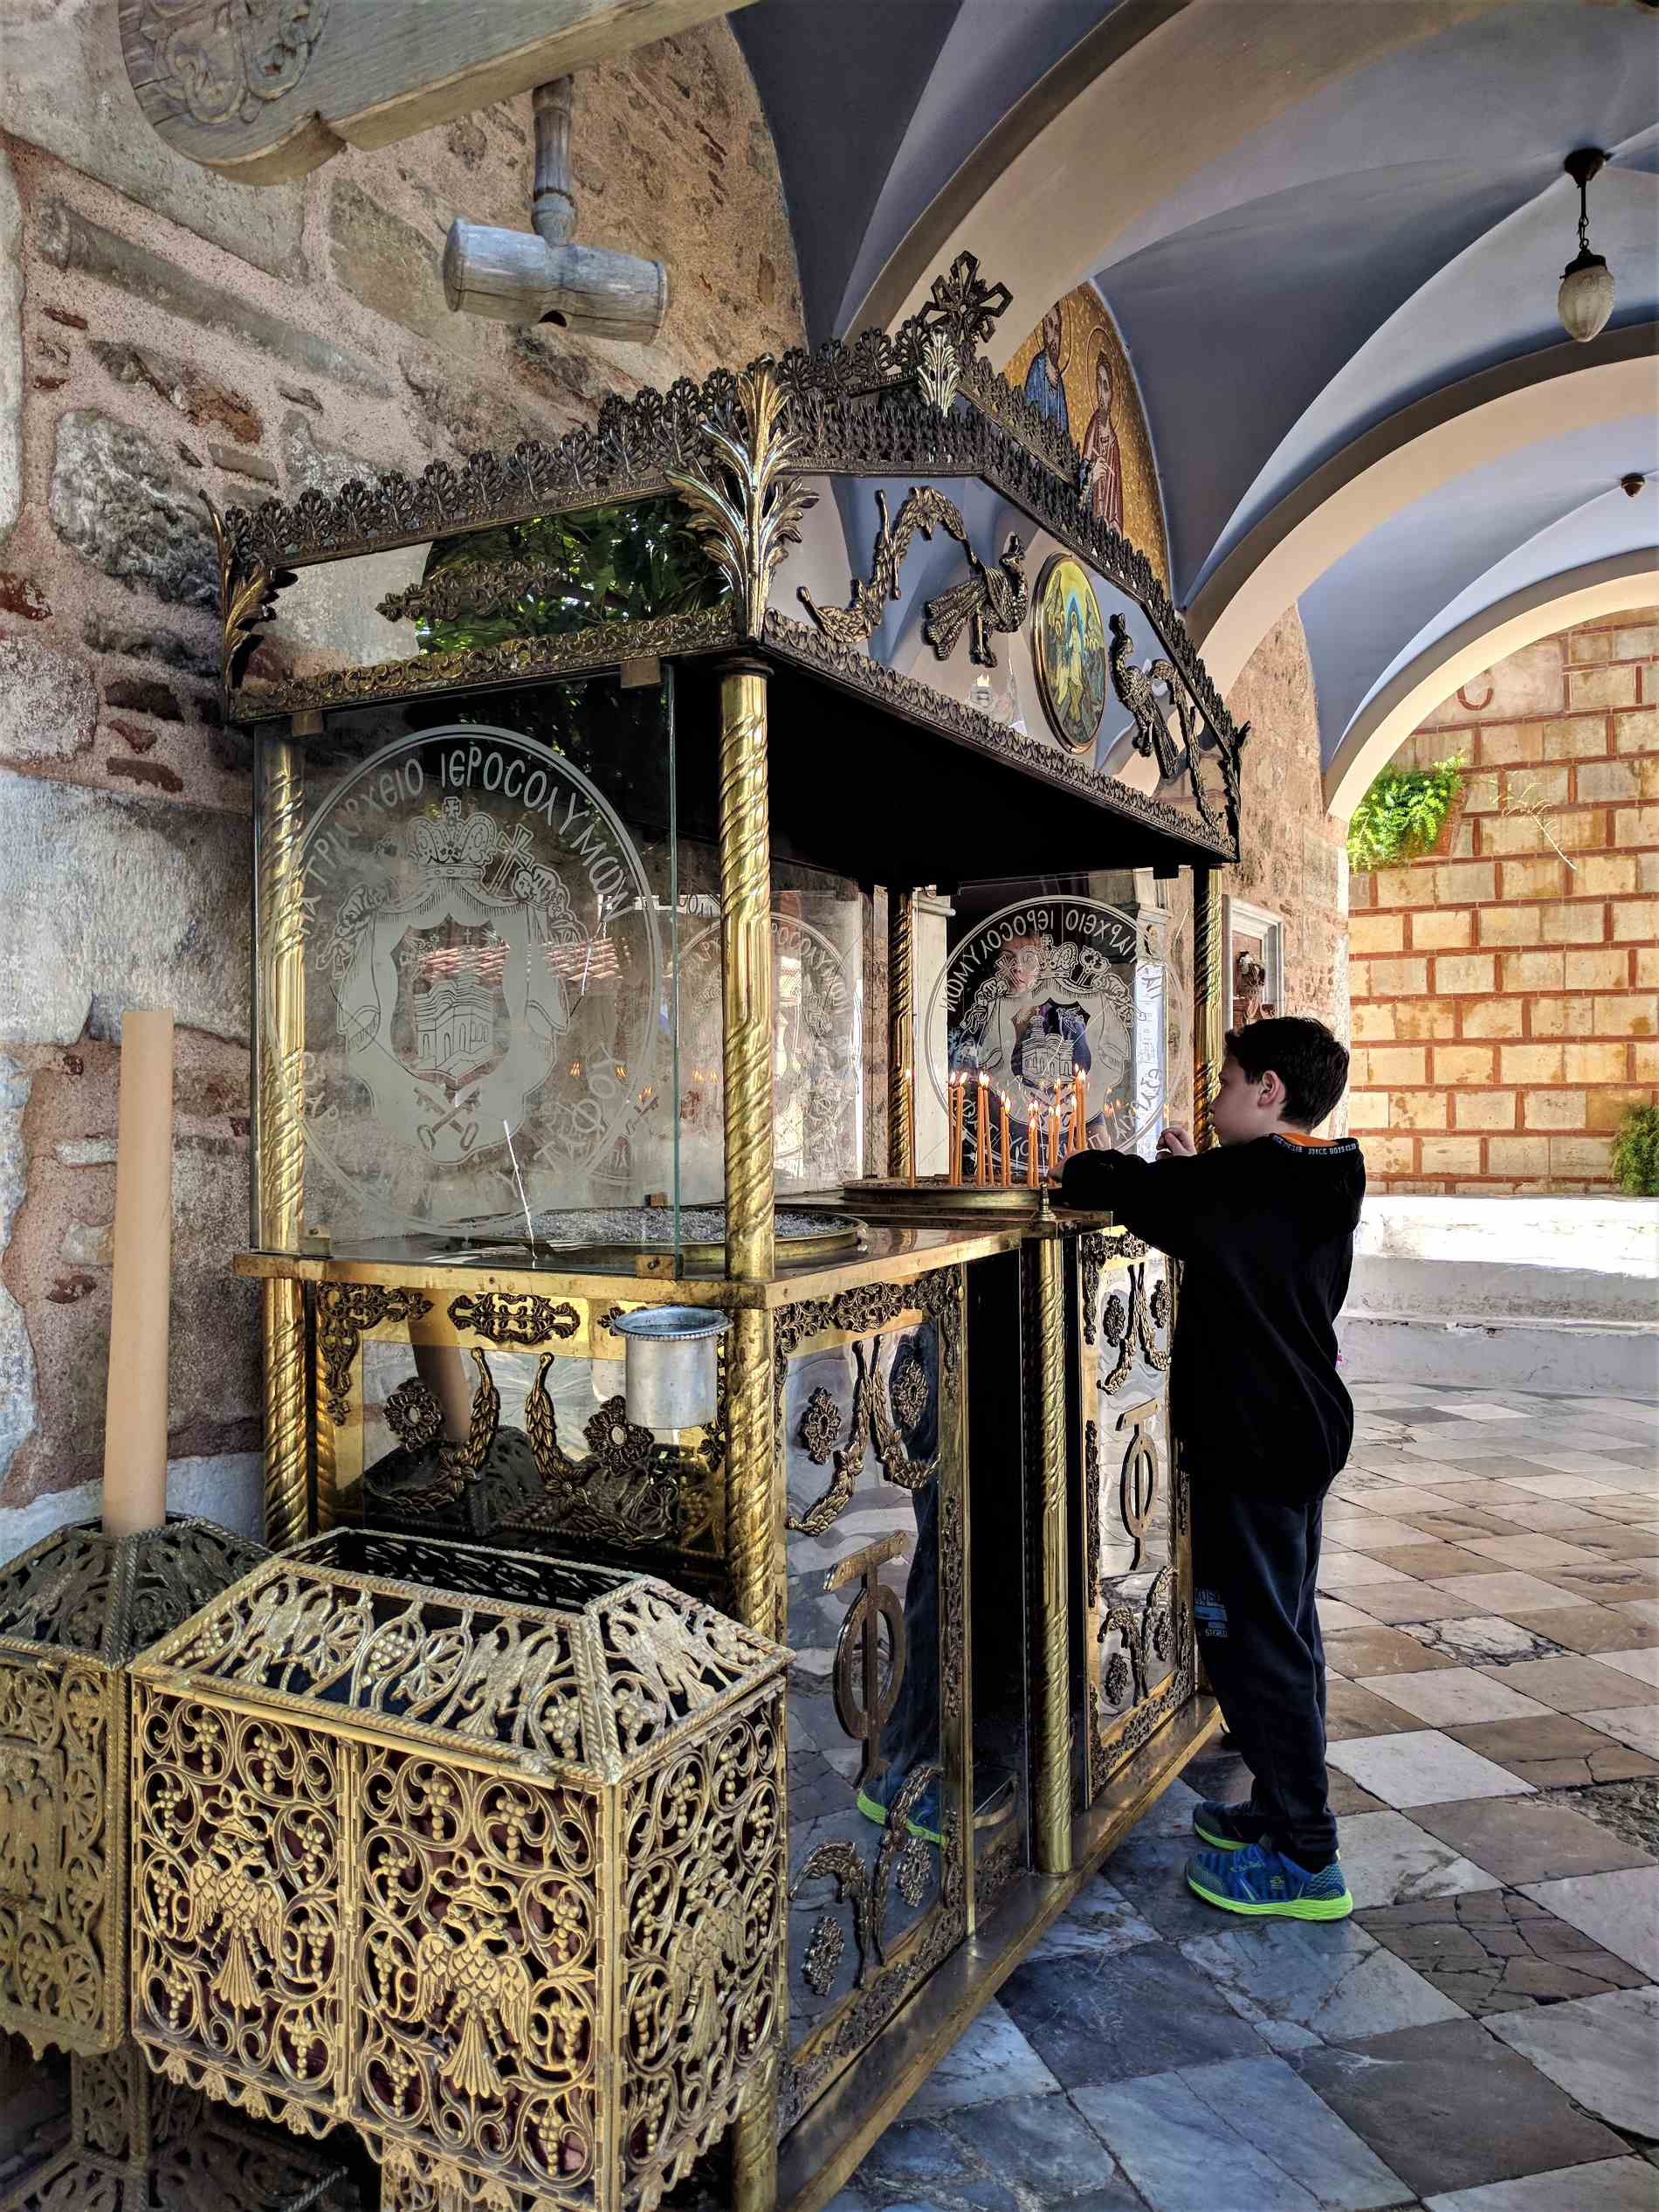 According to the Greek Orthodox church, honoring your name day requires your visit to the church where the saint who carries your name is being celebrated. Source: Truevoyagers